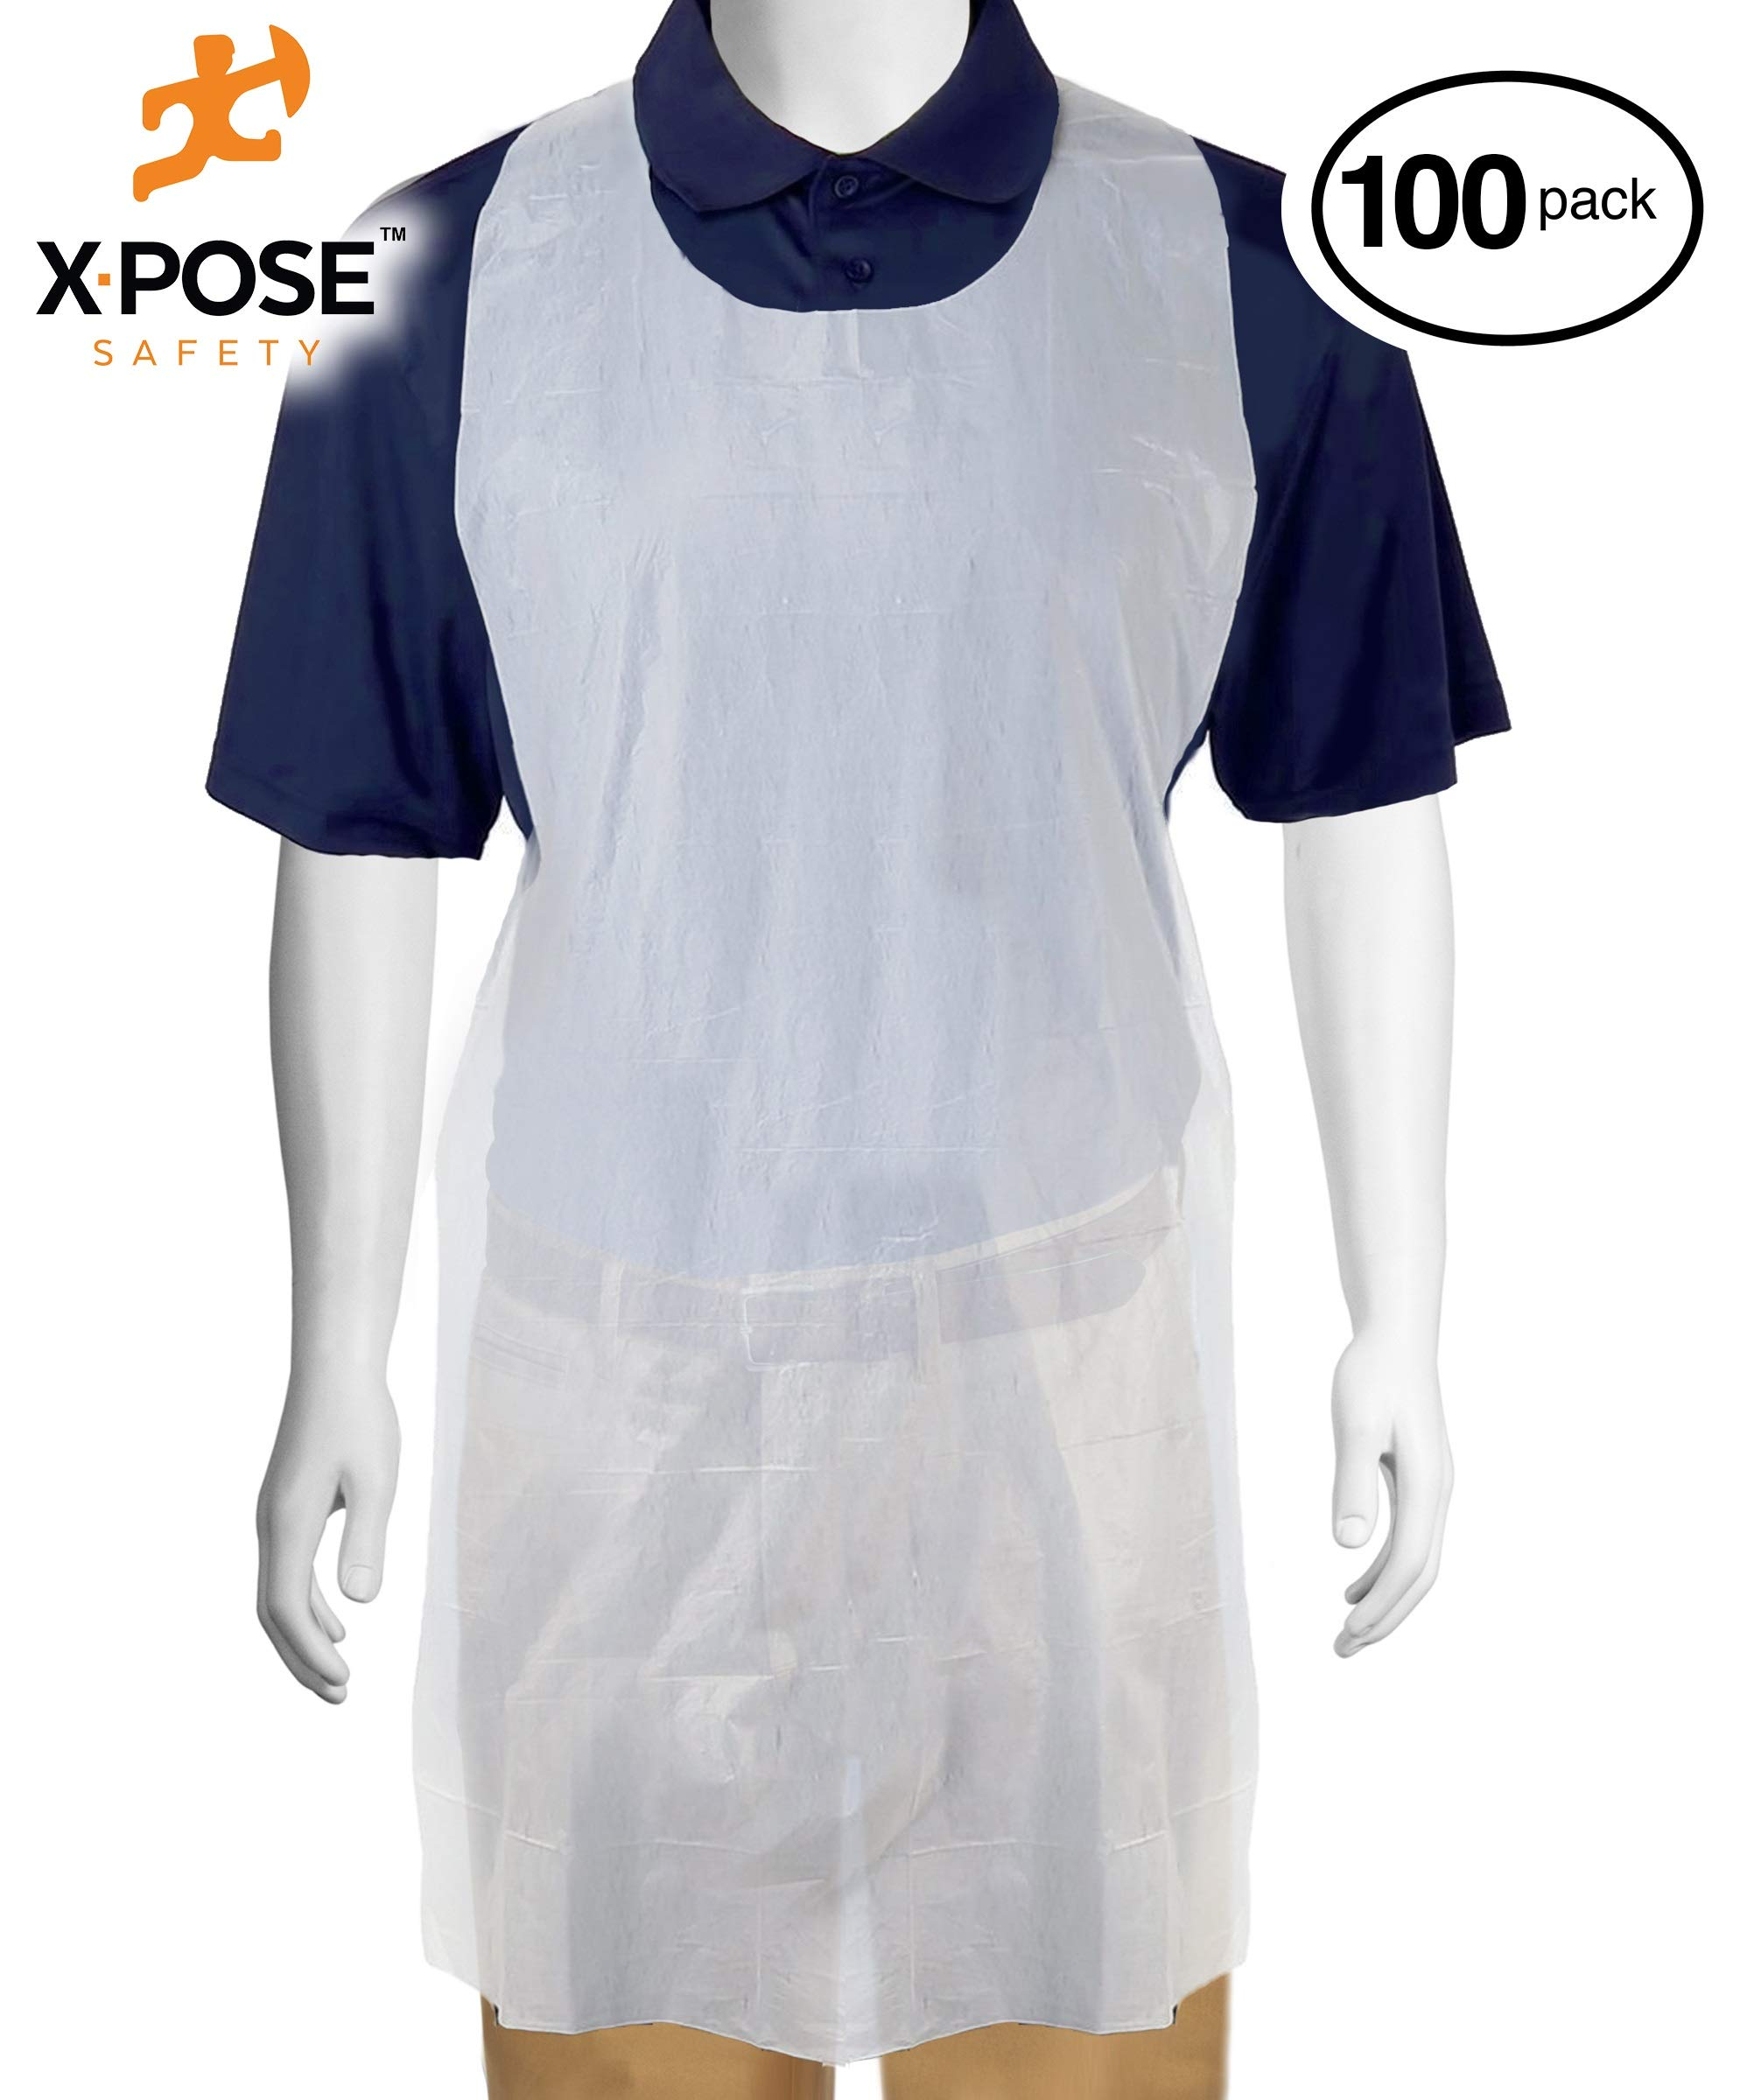 100 White Plastic Disposable Aprons For Cooking, Painting and More - Individually Packaged - Durable 1 mil Waterproof Polyethylene - 24'' x 42'' - by Xpose Safety